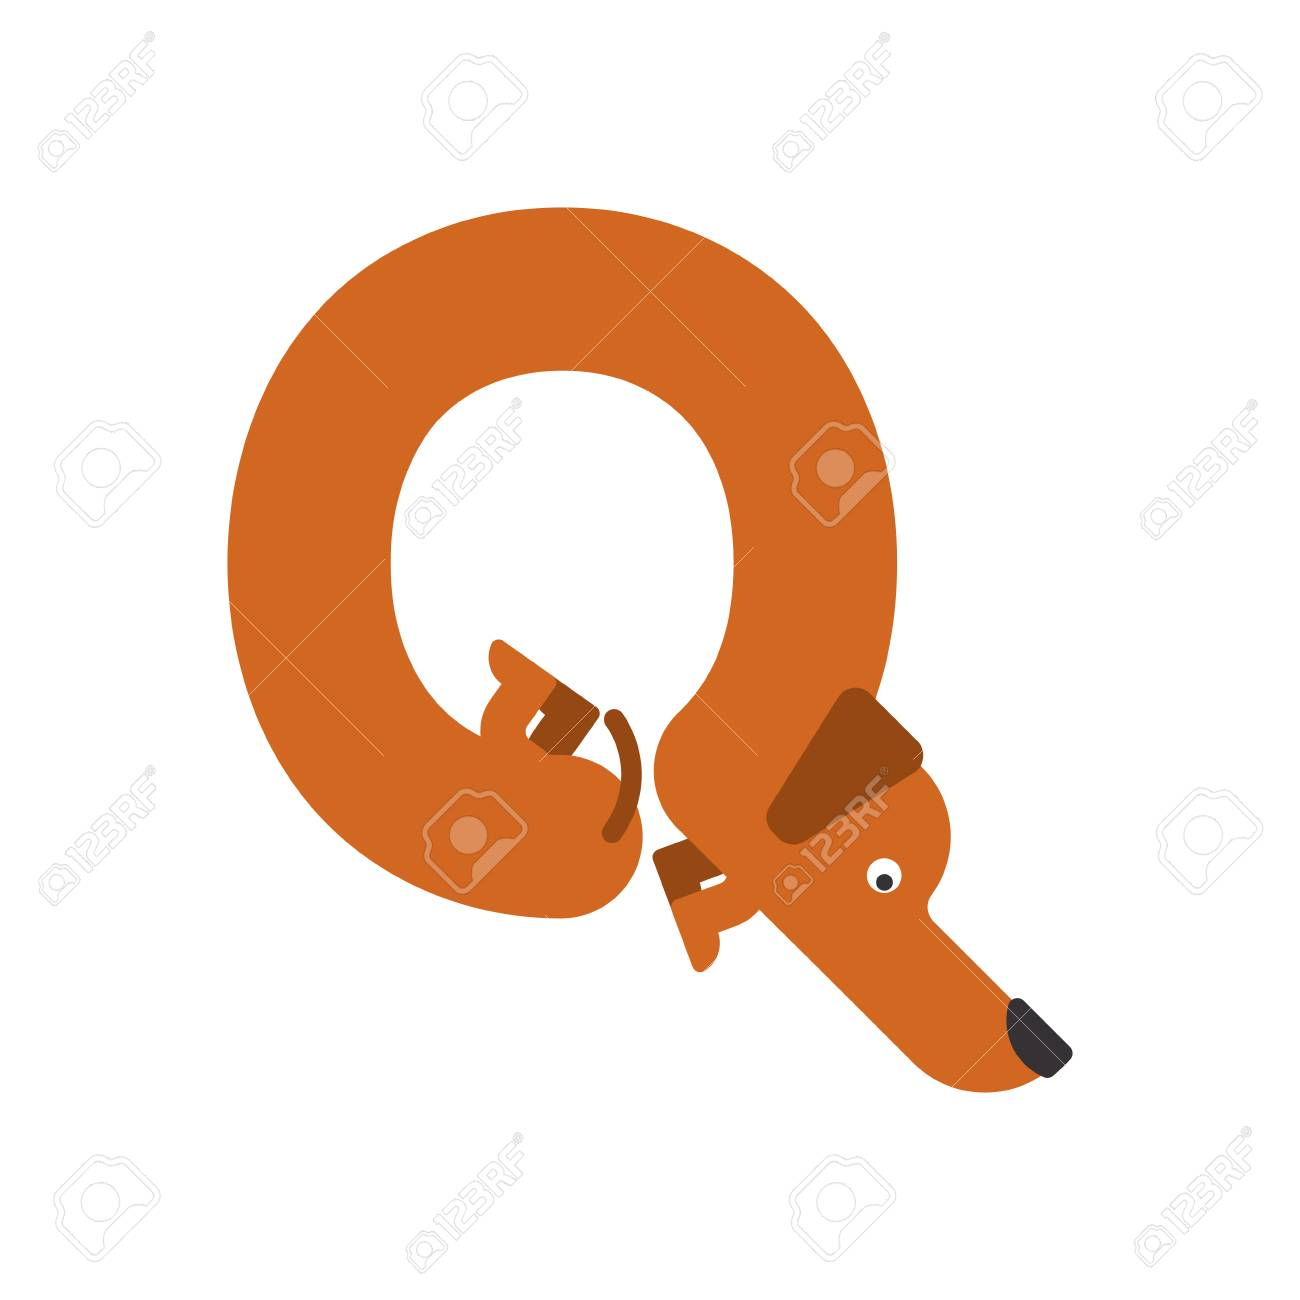 Letter q dog illustration royalty free cliparts vectors and stock letter q dog illustration stock vector 84949808 buycottarizona Image collections